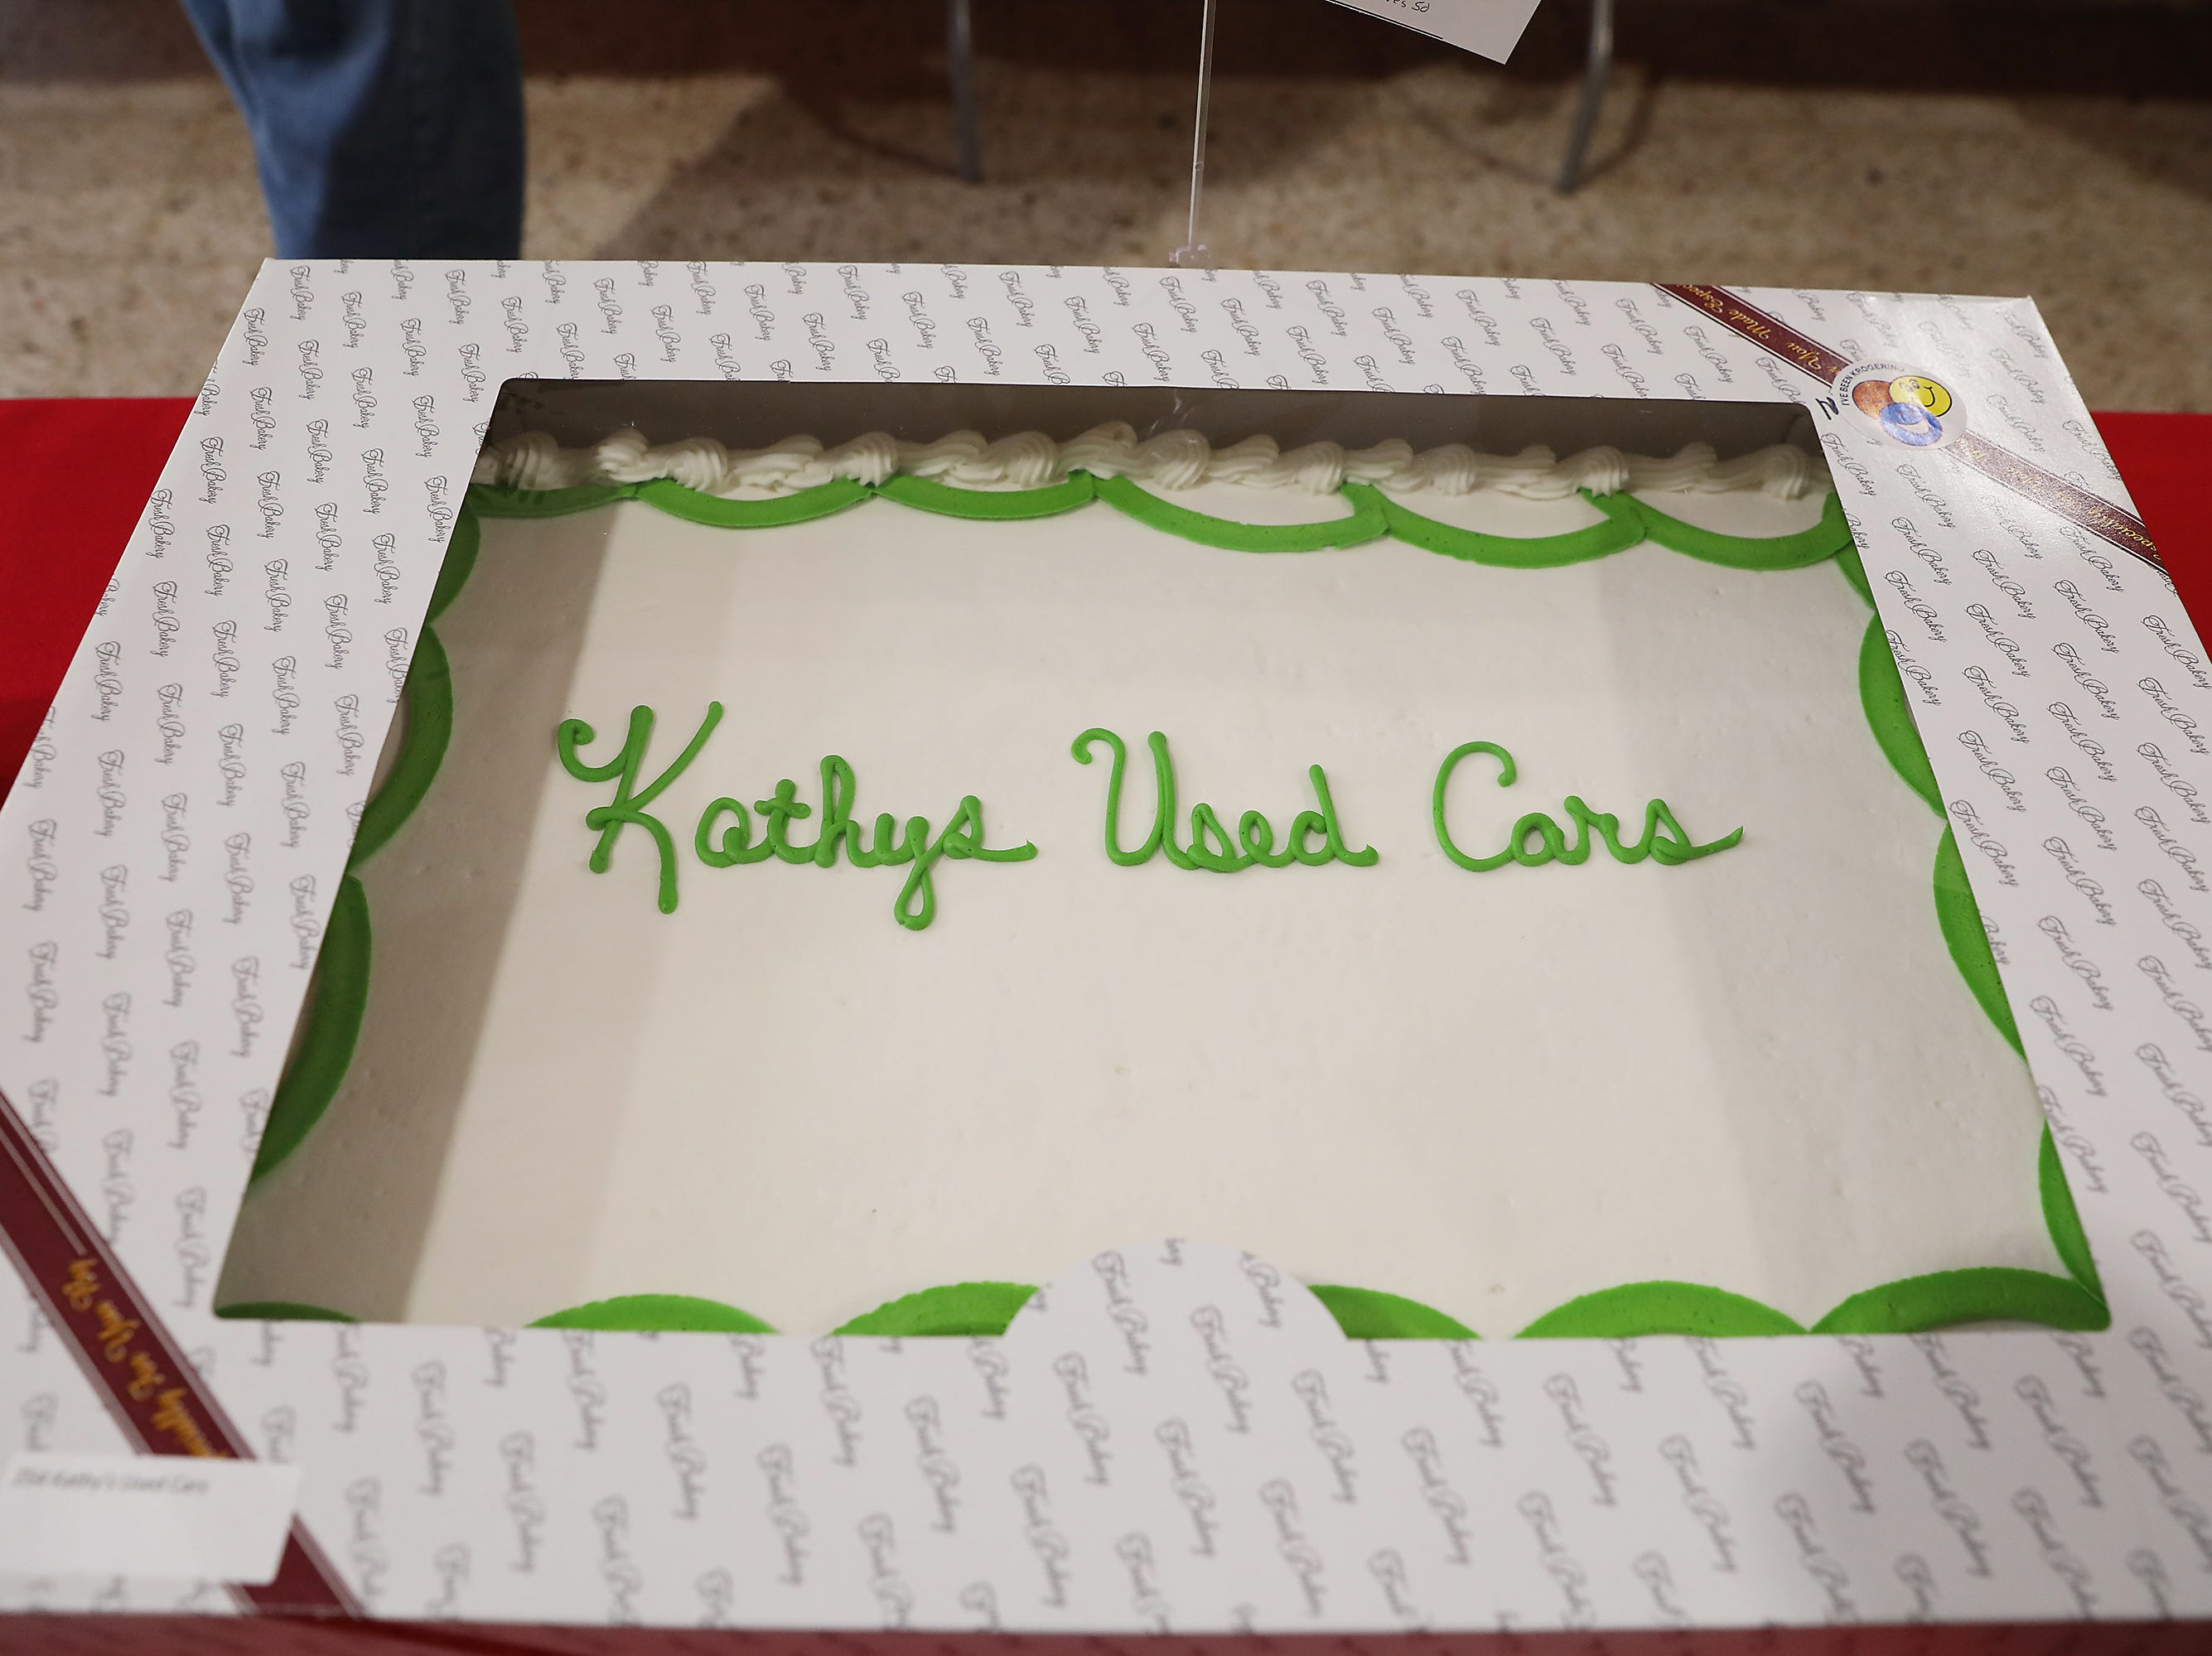 10 A.M. Friday cake 254 Kathy's Used Cars - $100 Kroger gift card